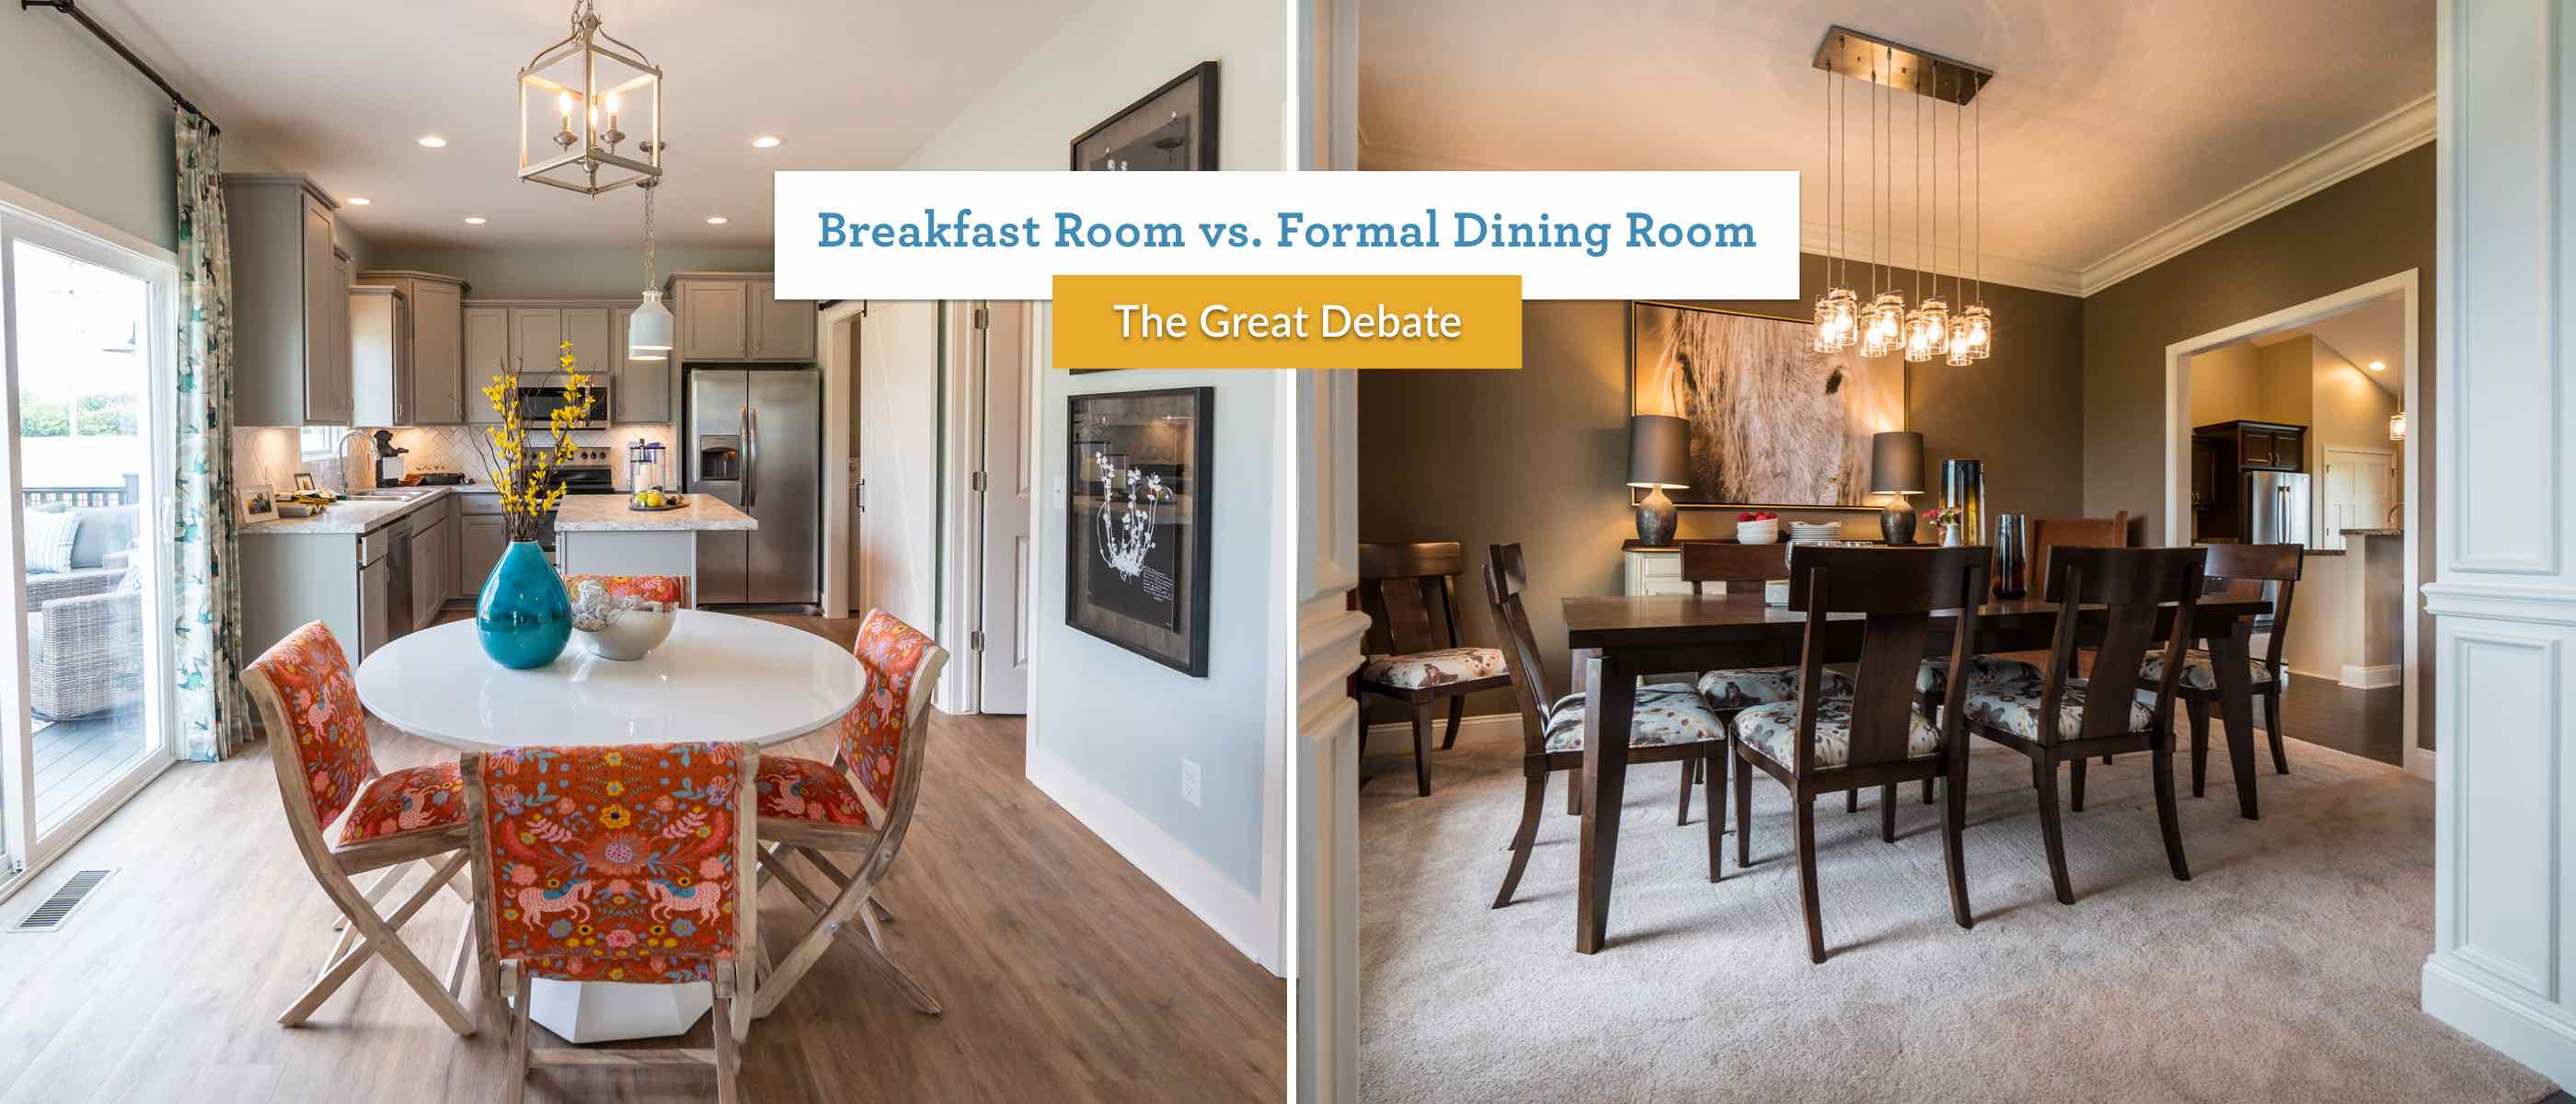 Breakfast Room Vs Formal Dining, What Is Considered A Formal Dining Room